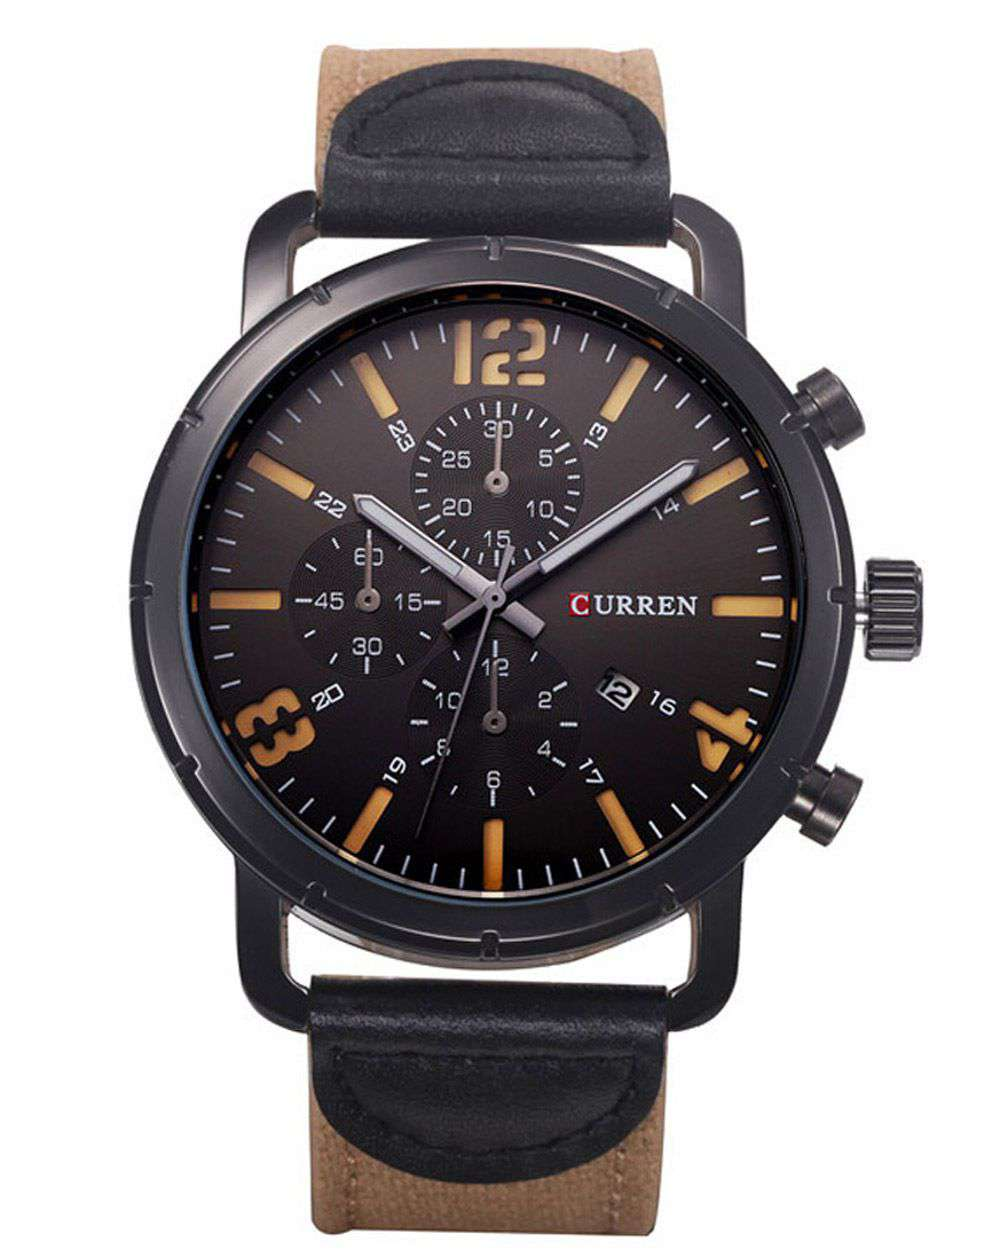 Curren 8194D-5-Brown/Black/Yellow Leather Strap Watch